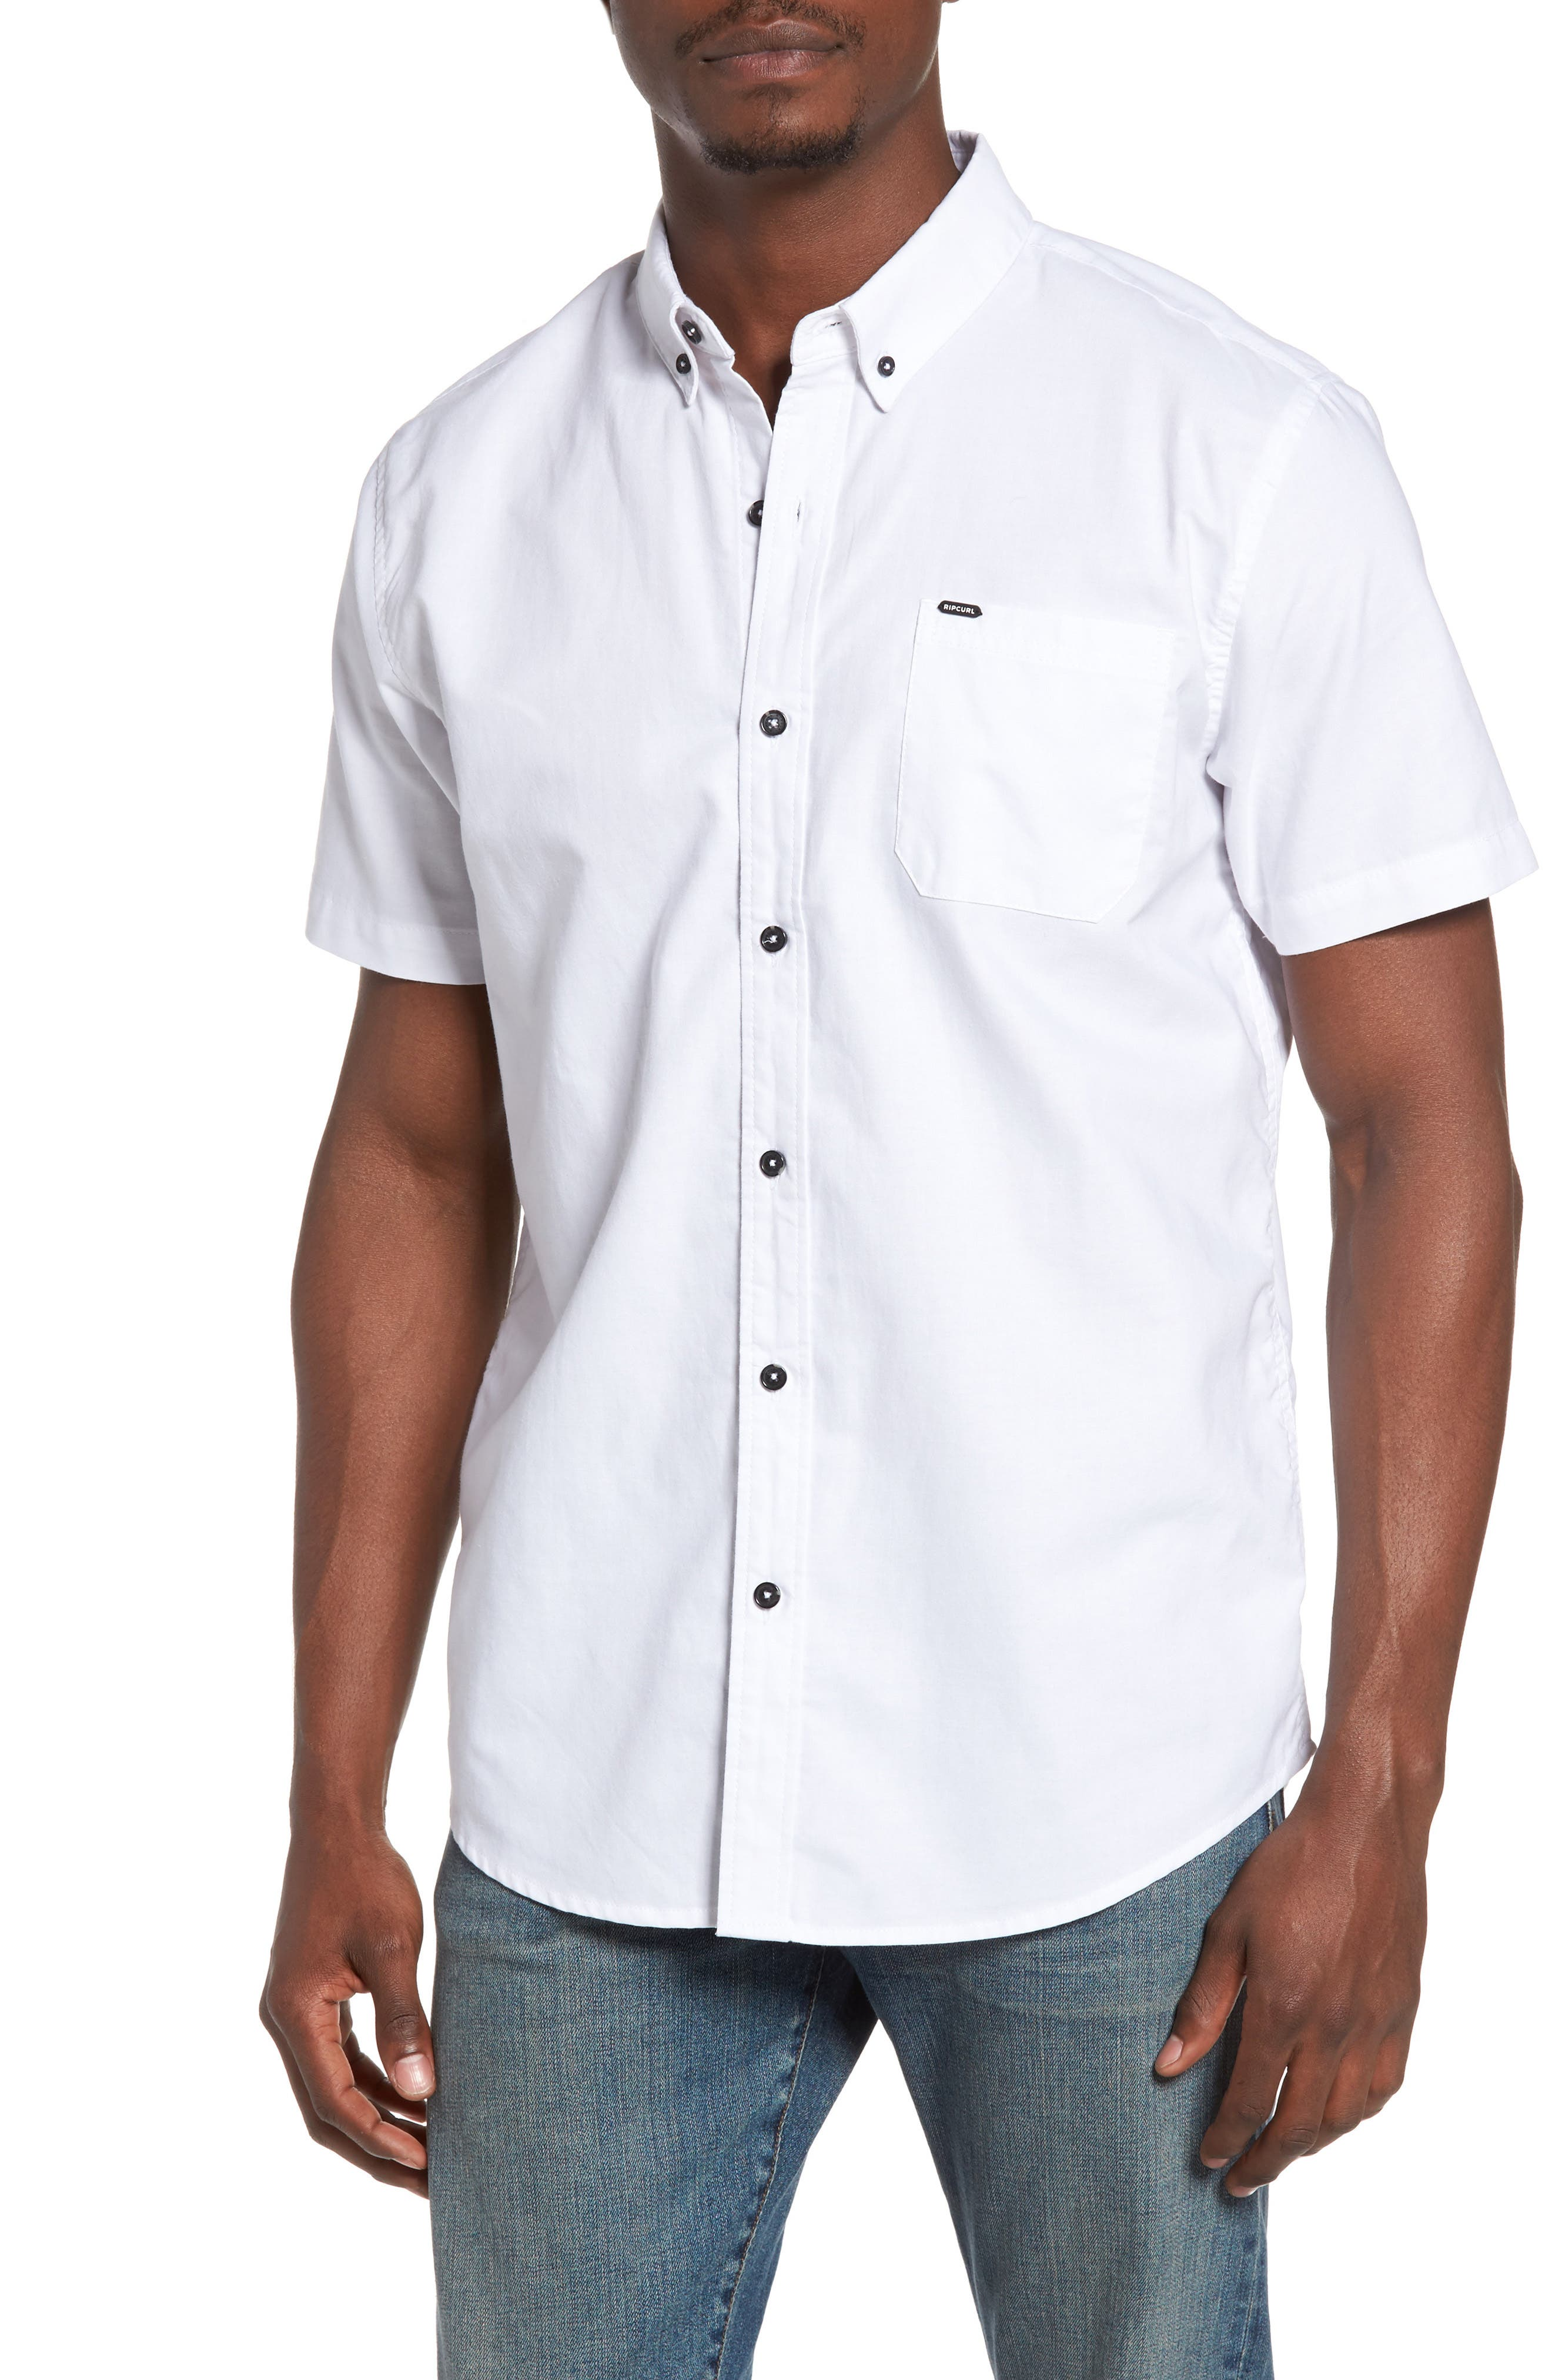 Alternate Image 1 Selected - Rip Curl Ourtime Woven Shirt